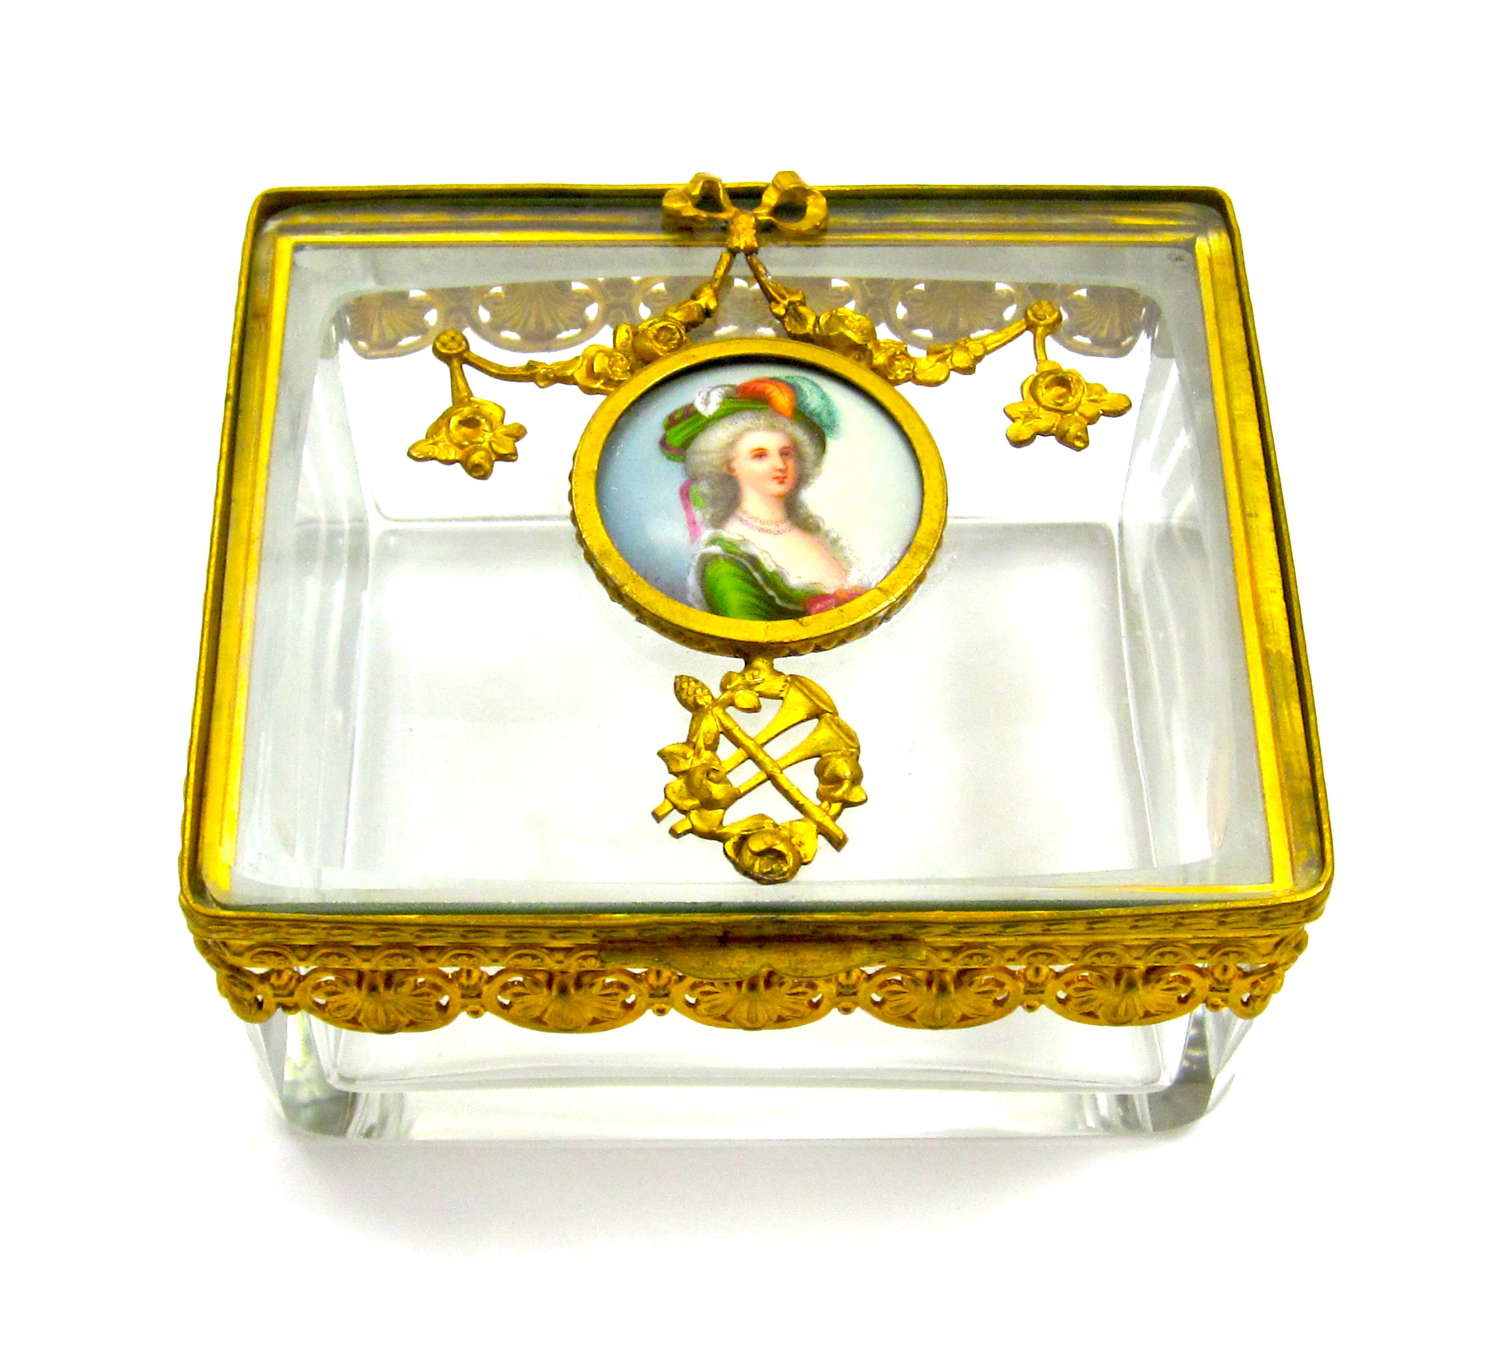 A Fine Palais Royal Dore Bronze and Crystal Casket with Miniature